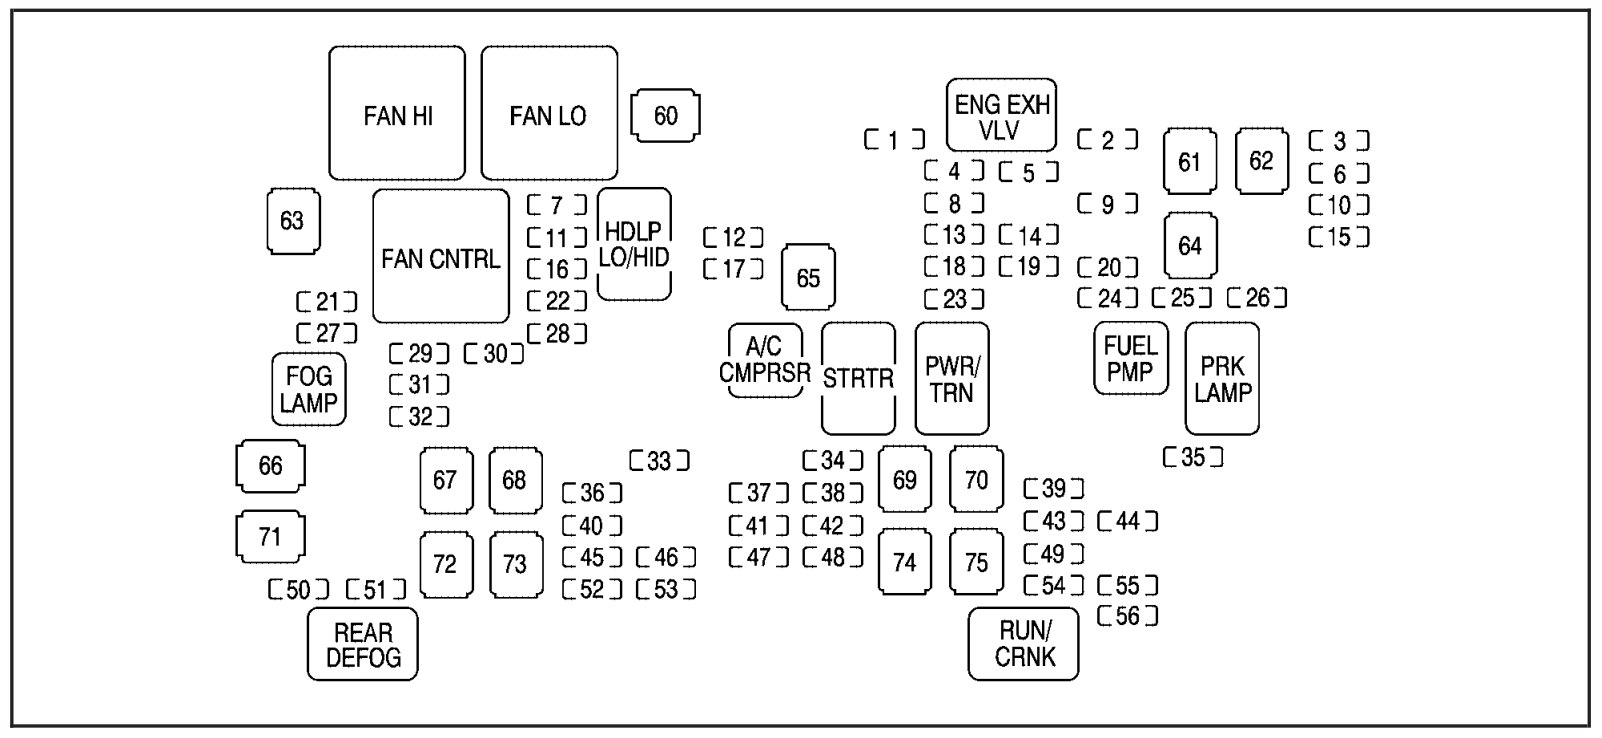 Chevrolet Suburban 2007 Fuse Box Diagram Auto Genius Windshield Wipersmy Cruise Controlfuse Engine Compartment